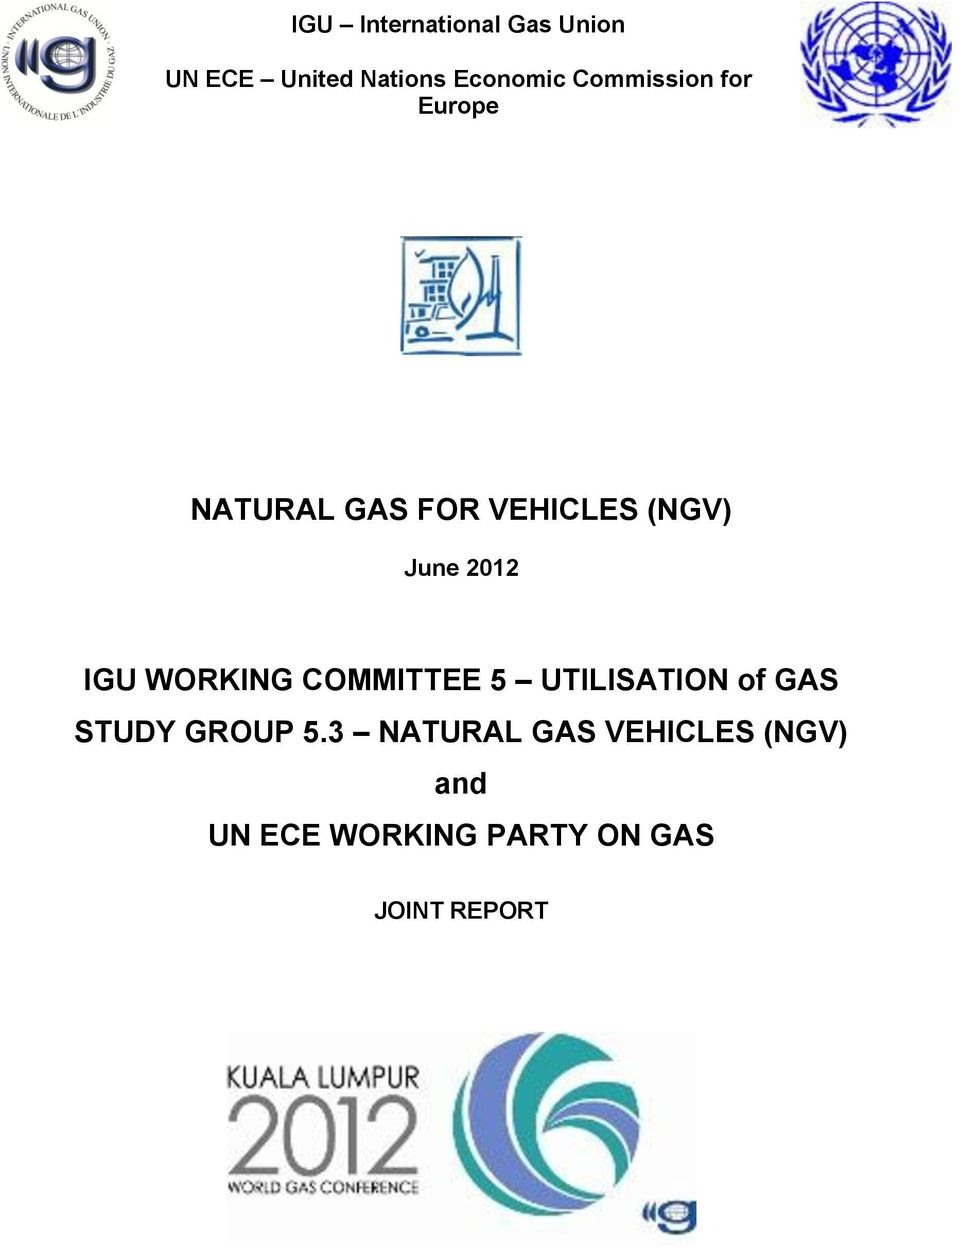 NATURAL GAS FOR VEHICLES (NGV) IGU WORKING COMMITTEE 5 UTILISATION ...